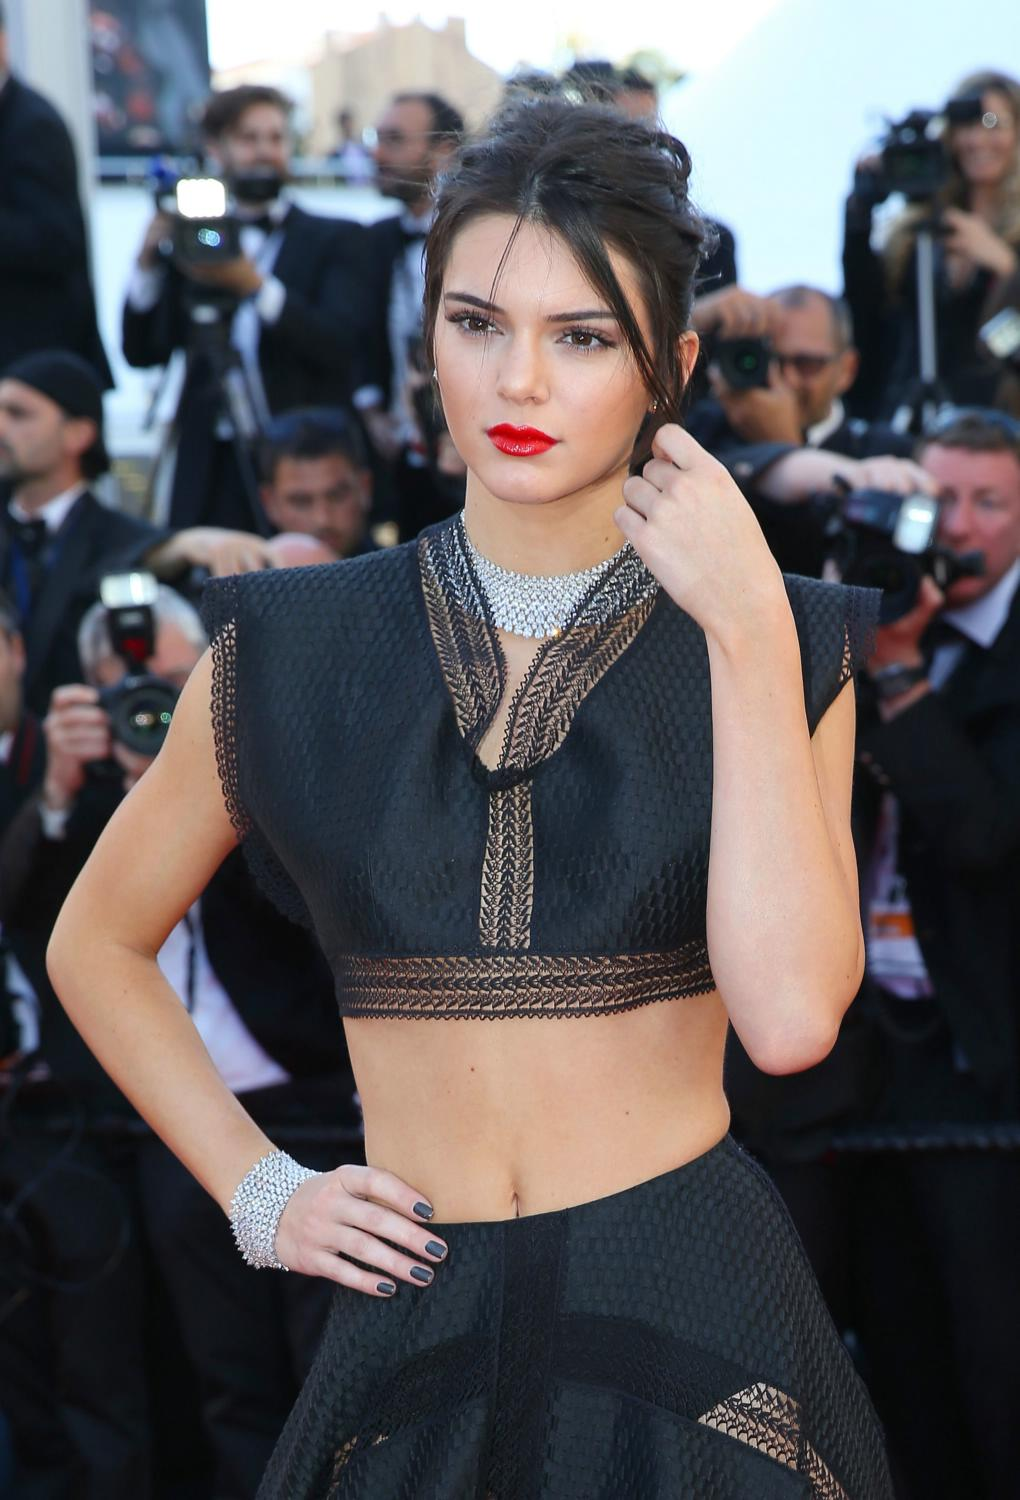 Kendall Jenner At Youth Cannes Premiere Celeb Donut